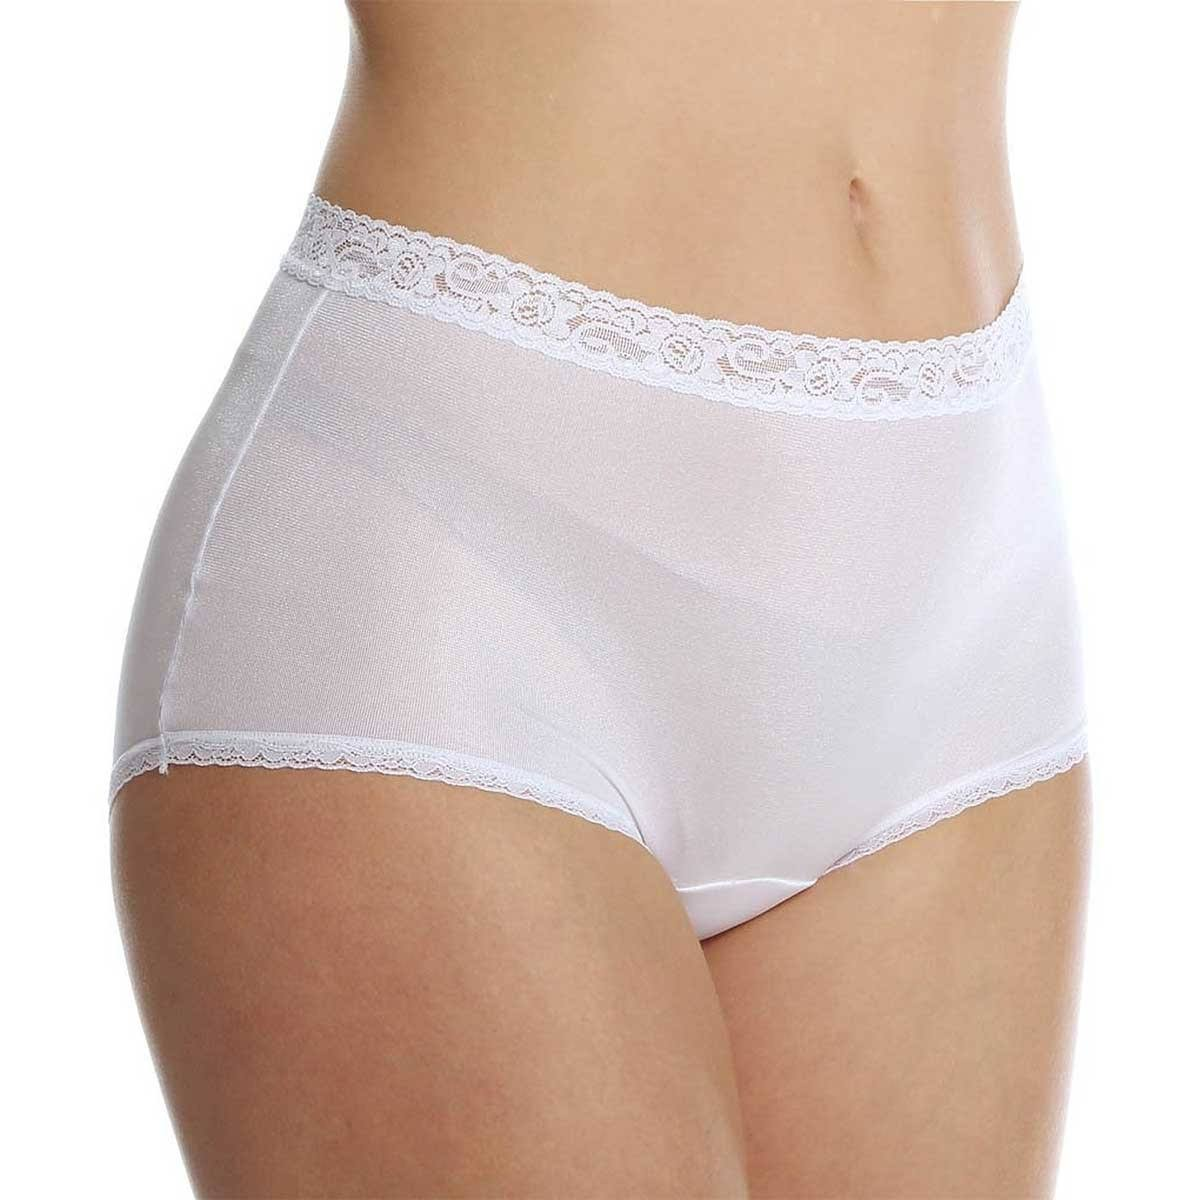 Lorraine Nylon Full Brief with Lace Trim Panty (LR102)